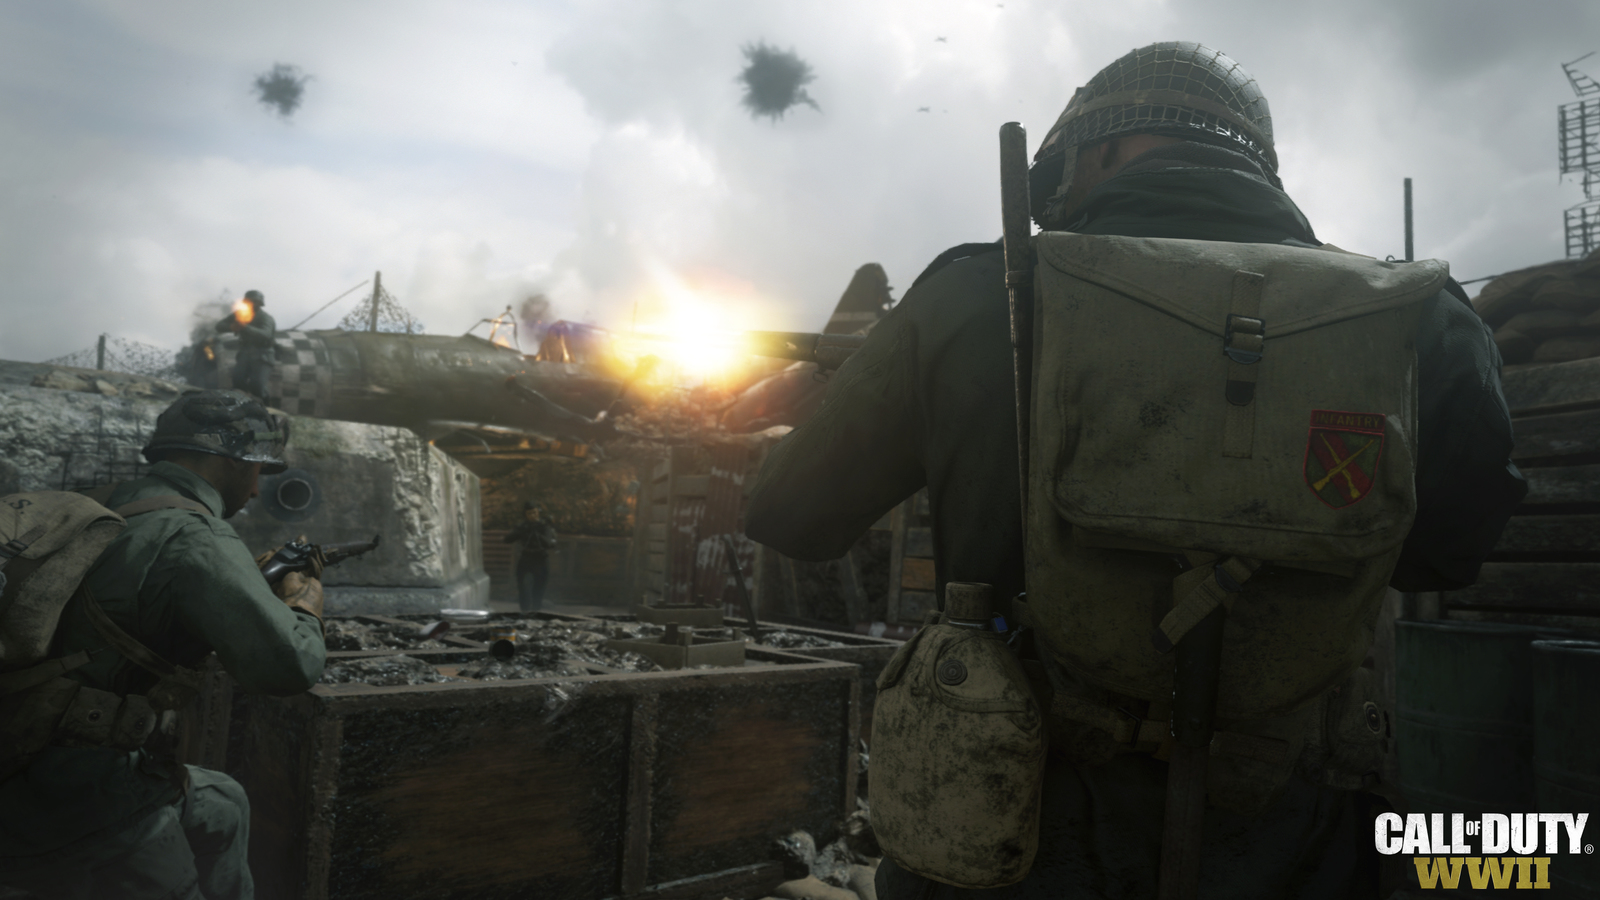 Call of Duty: WWII for Xbox One image